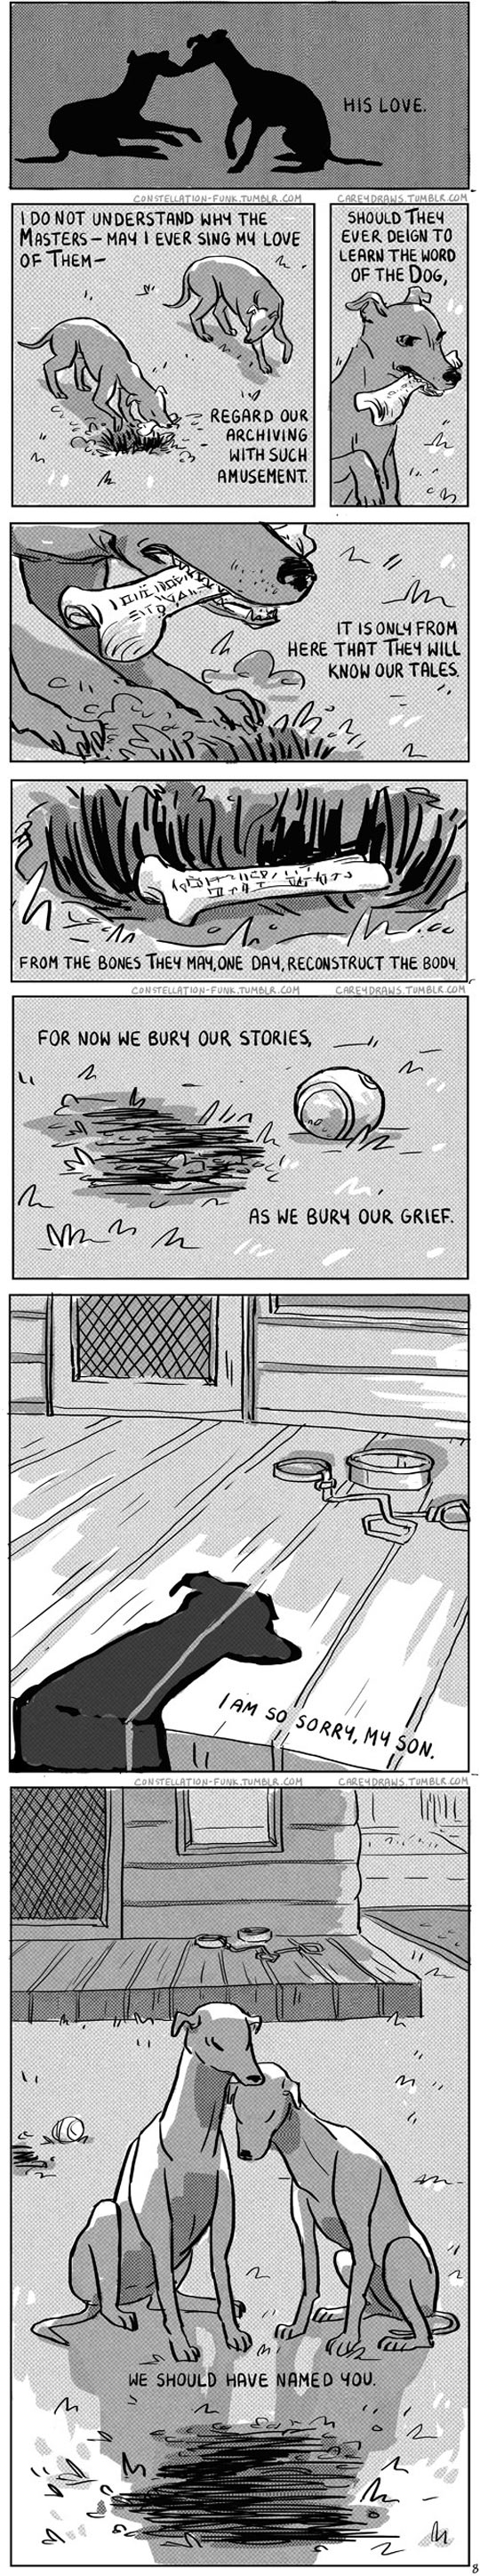 dogs-story-wife-son-buried-back-yard-comic-bones